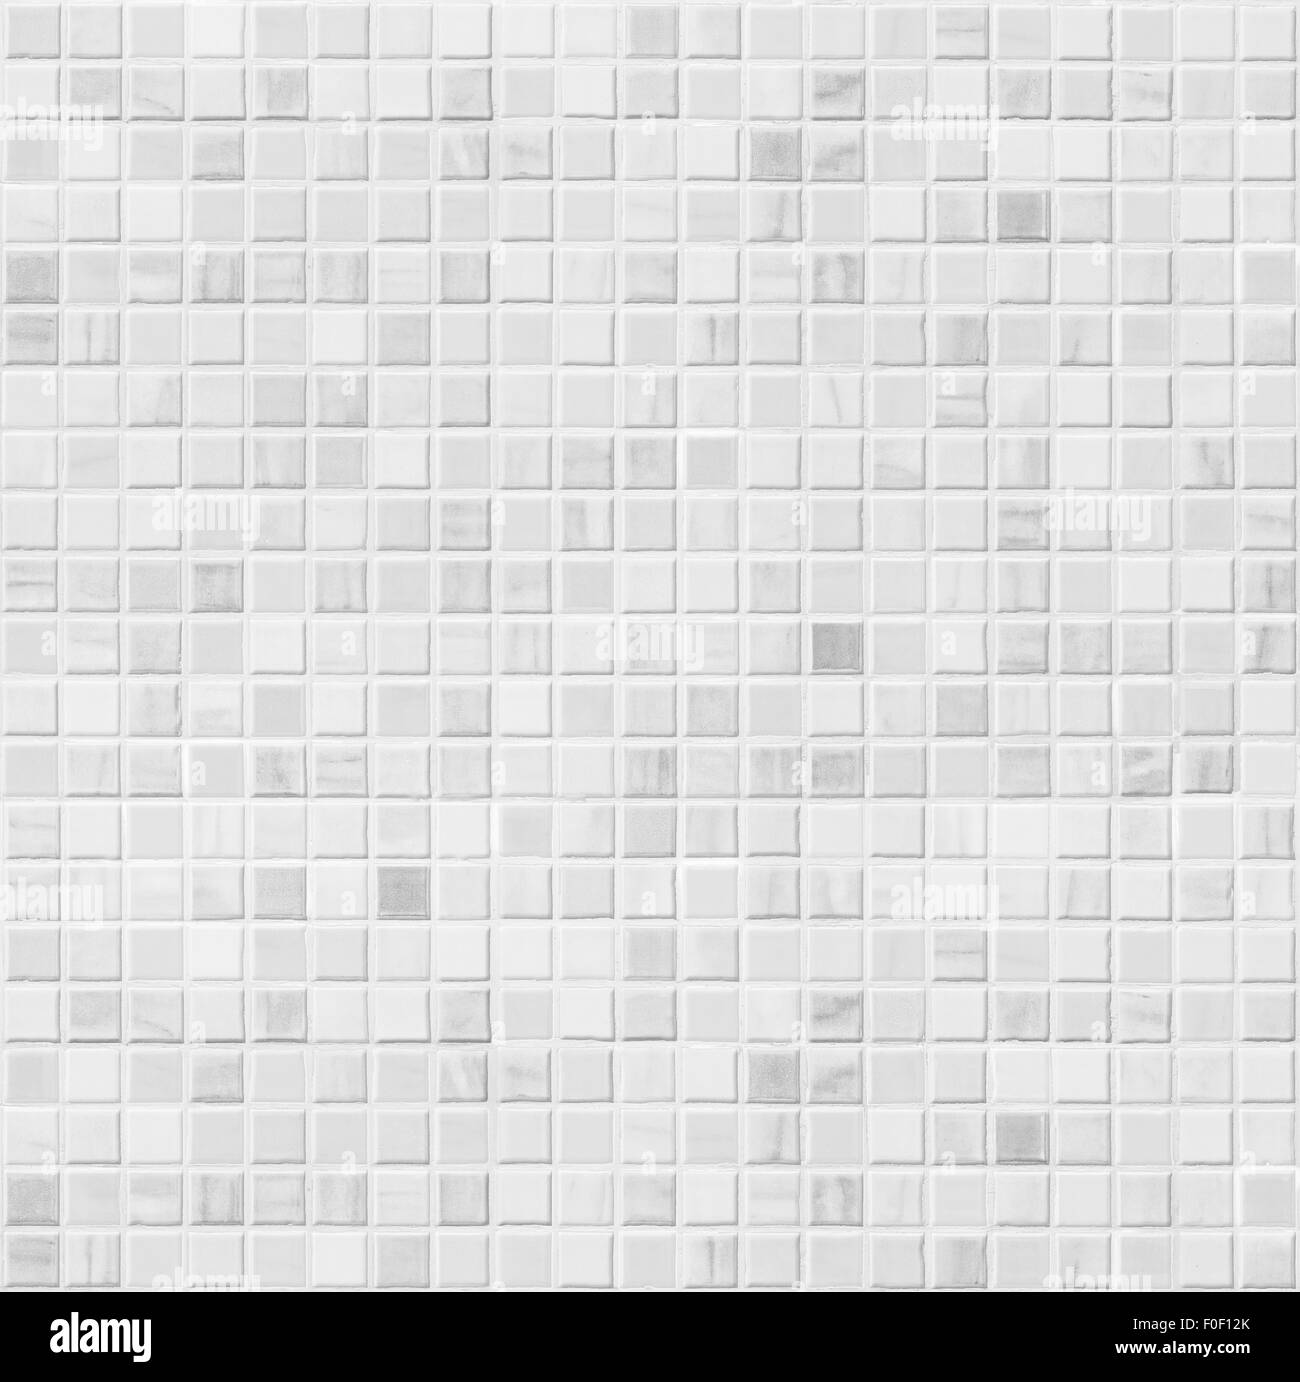 Best Of Seamless Bathroom Tiles Texture Hd Photos Decor And Ideas